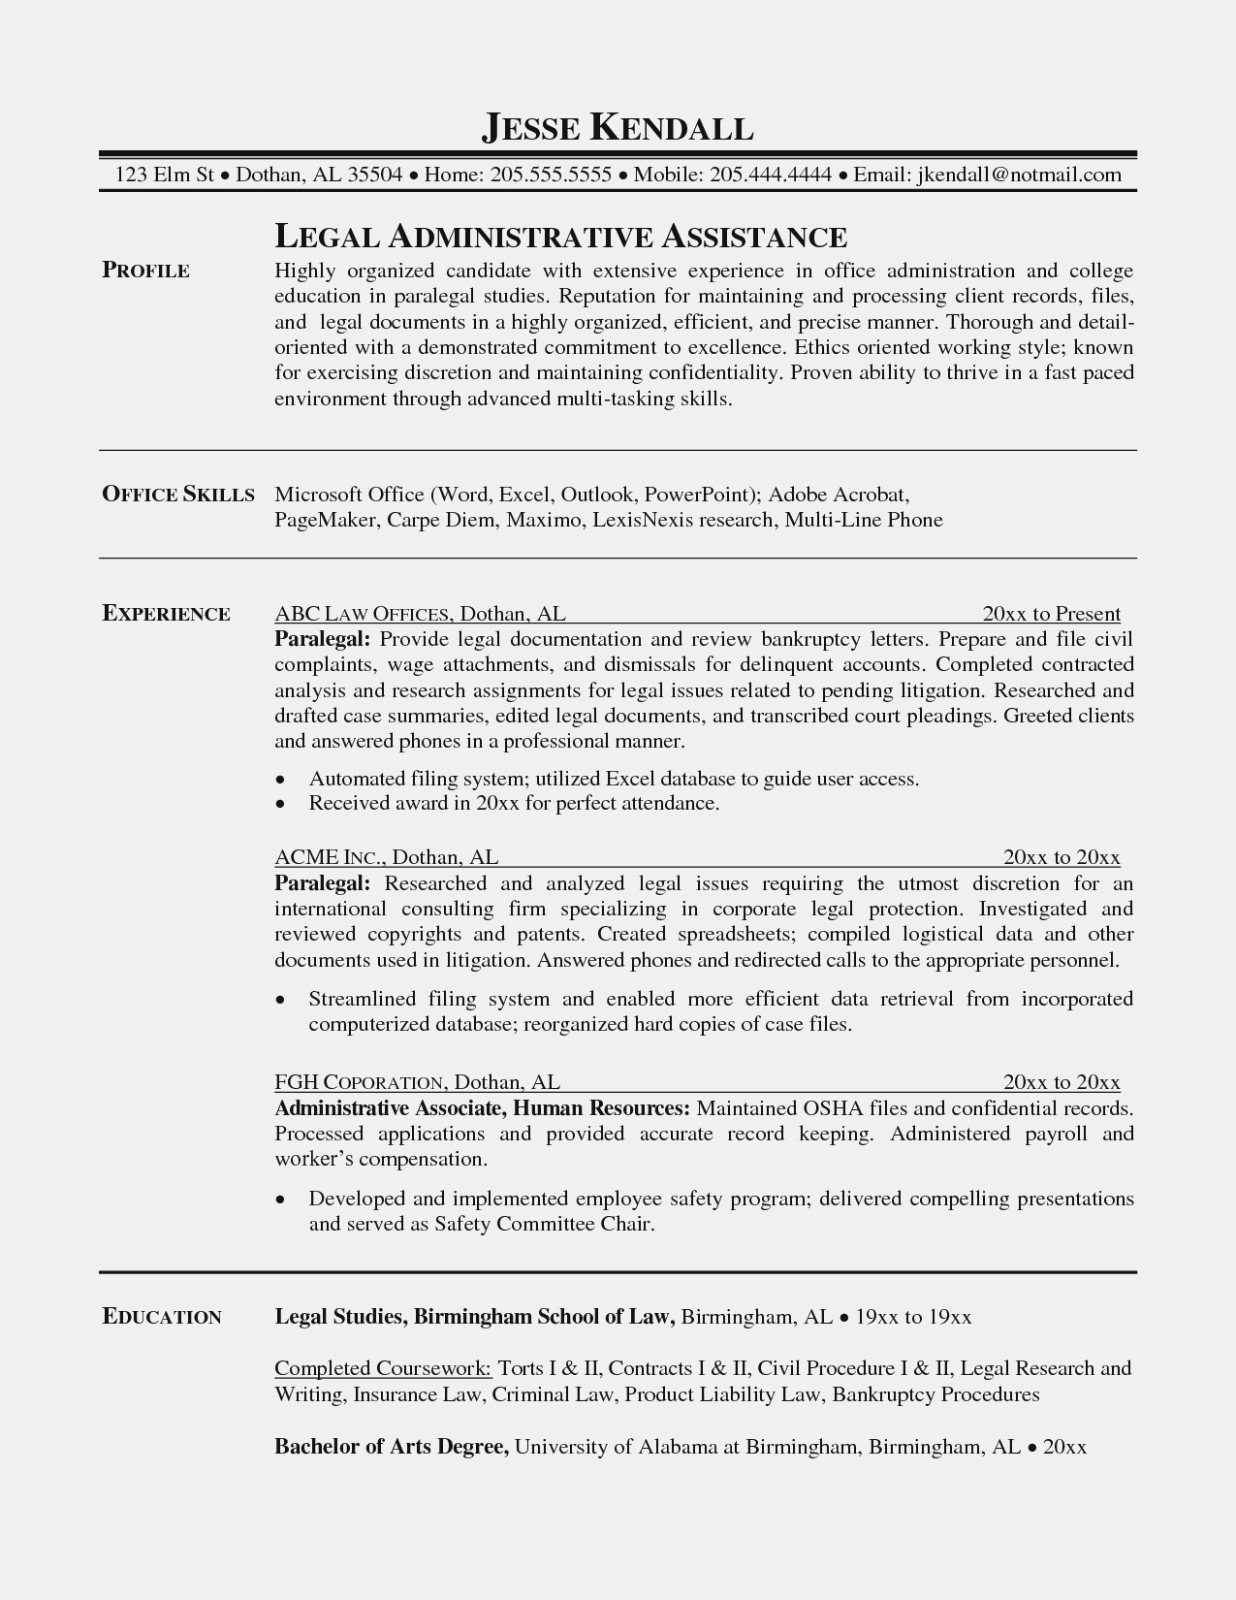 Paralegal Resume Sample 2019 Paralegal Resume Examples 2020